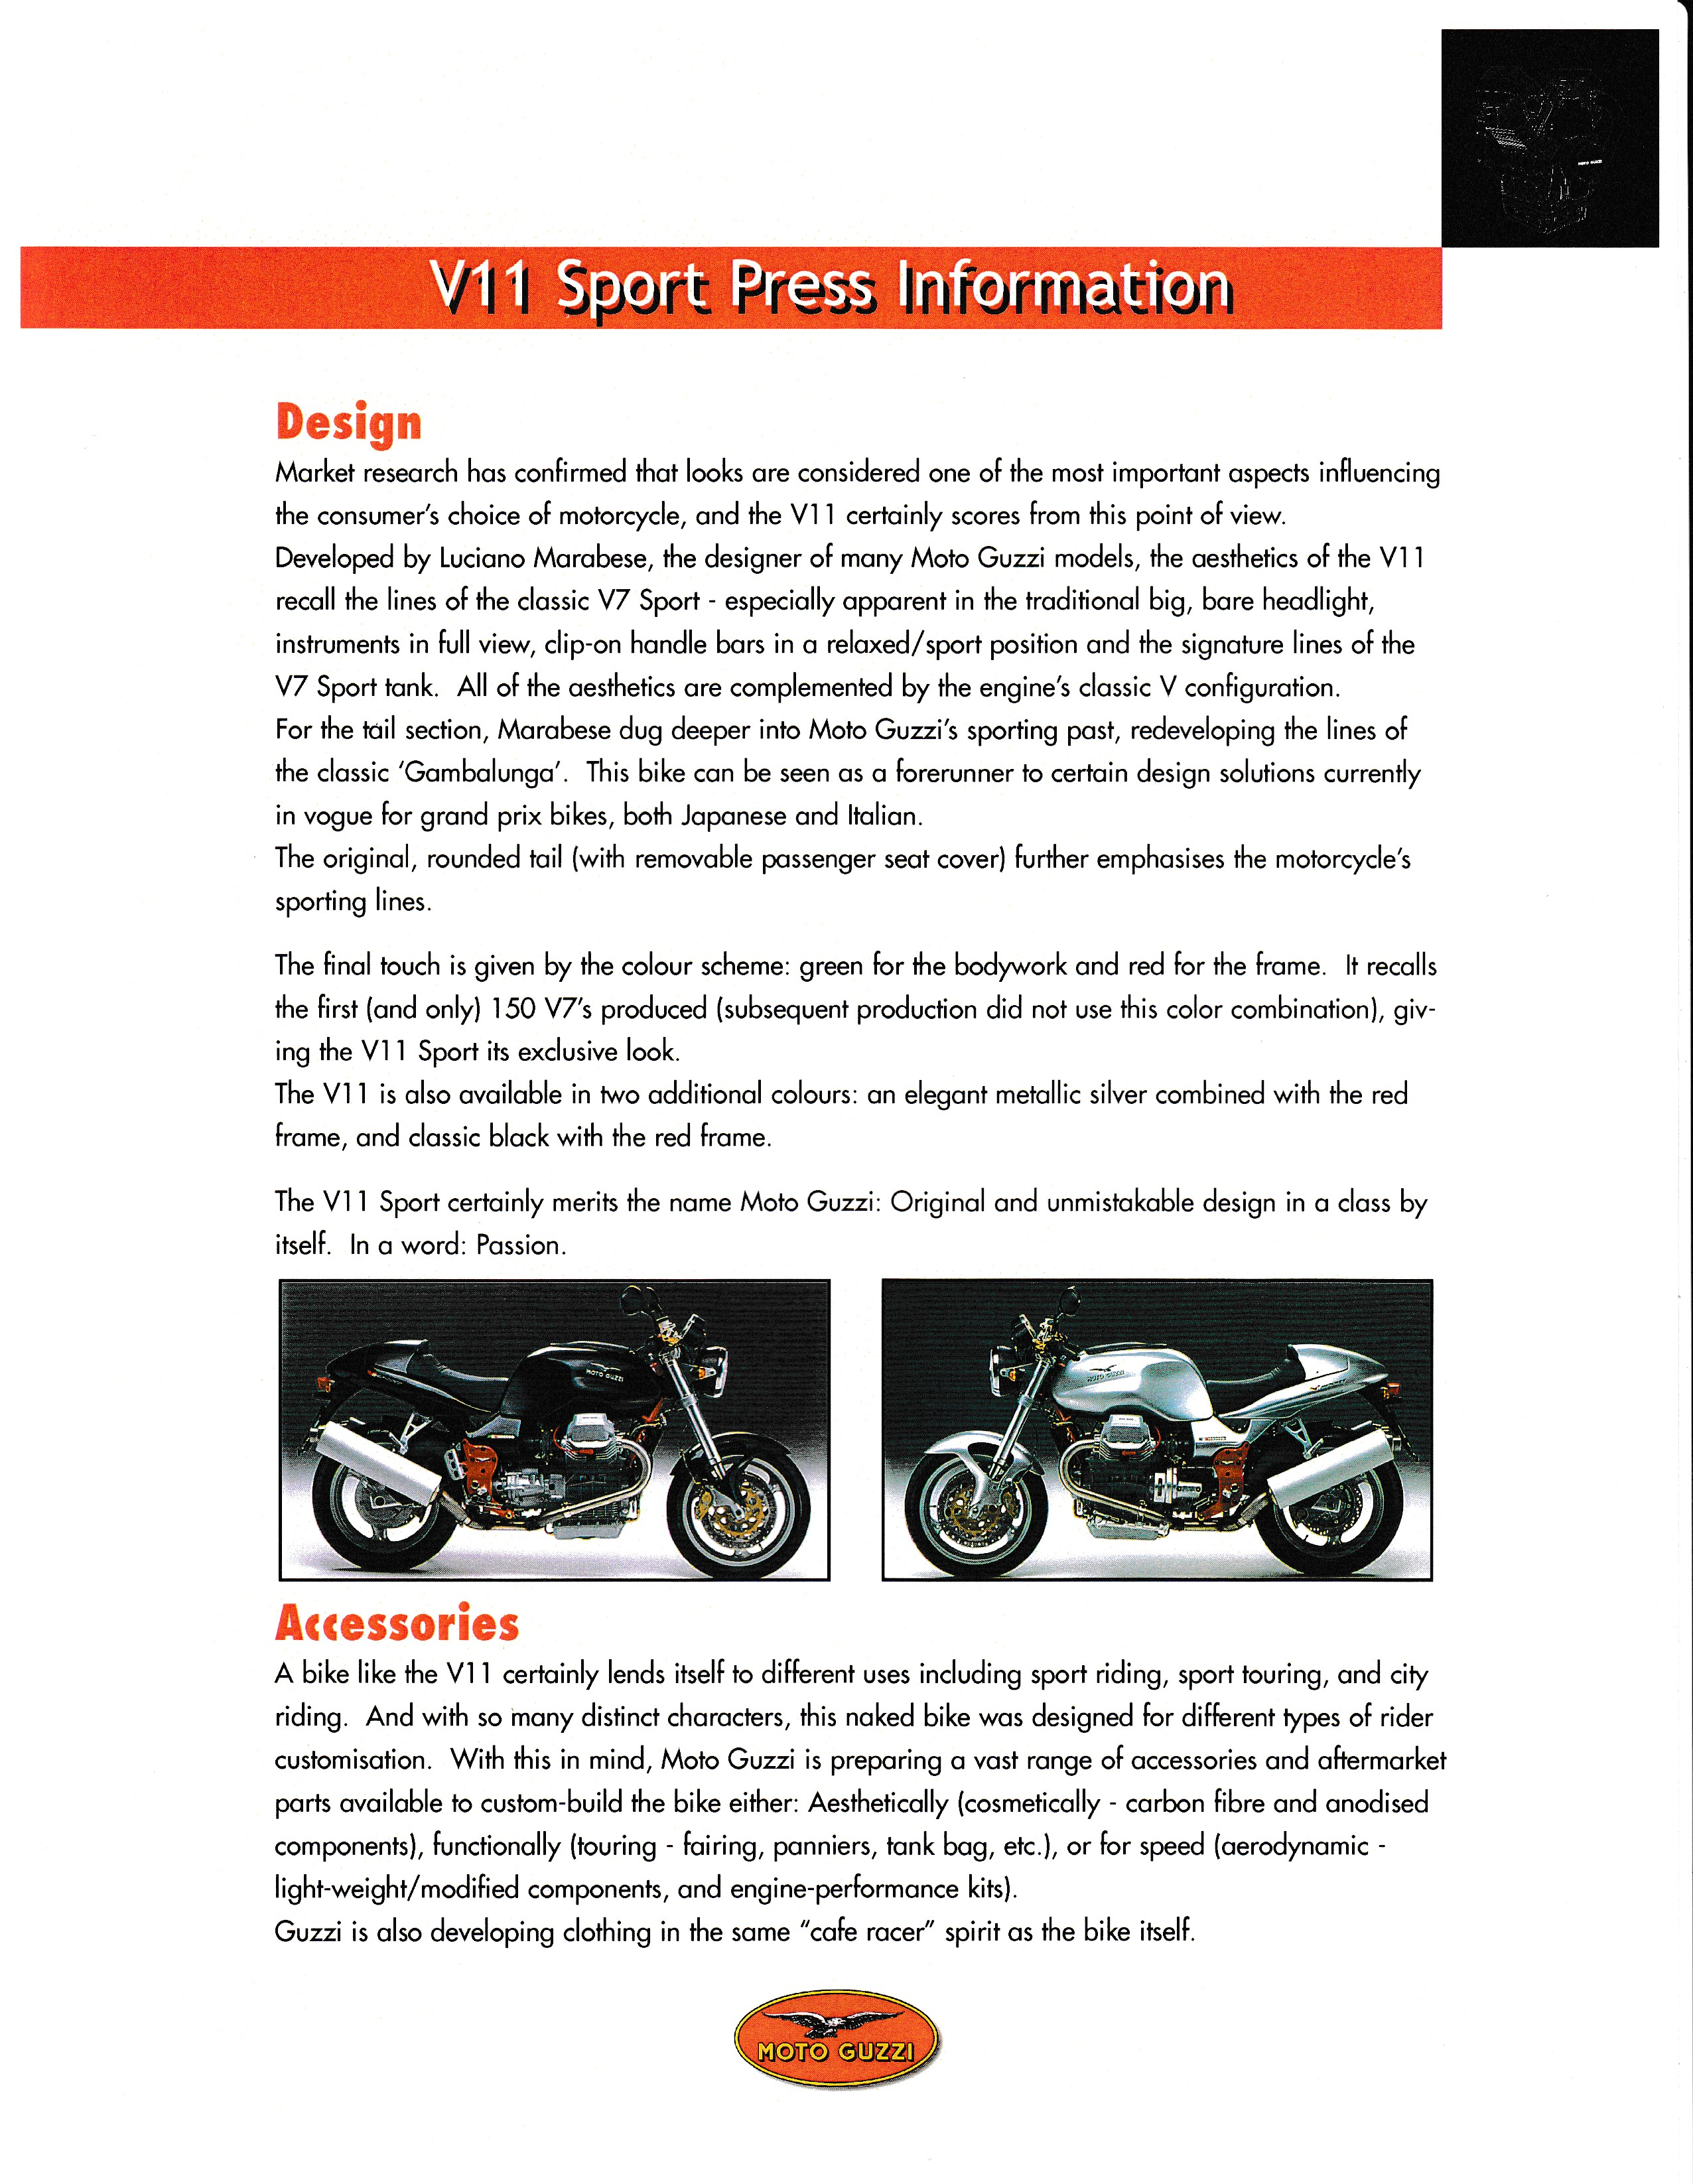 Press release - Moto Guzzi V11 Sport press kit and test bike scheduling (2000 June 07)